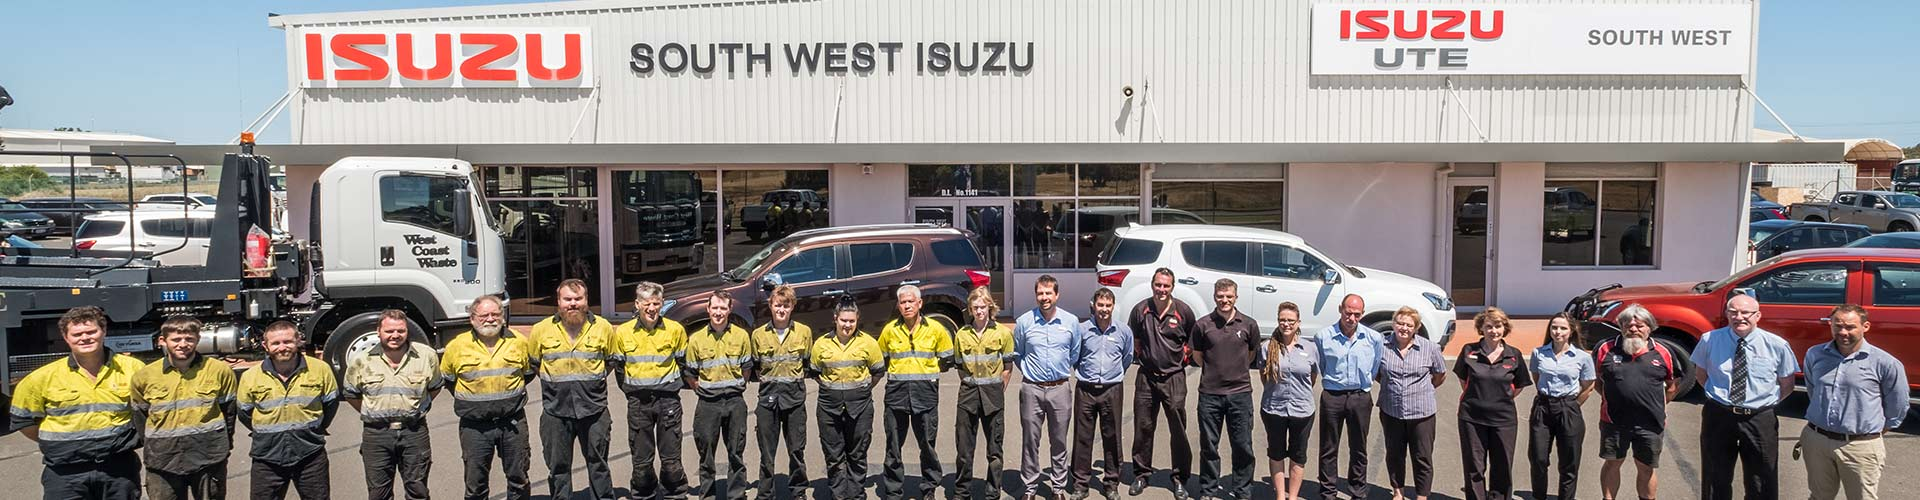 South West Isuzu About Us